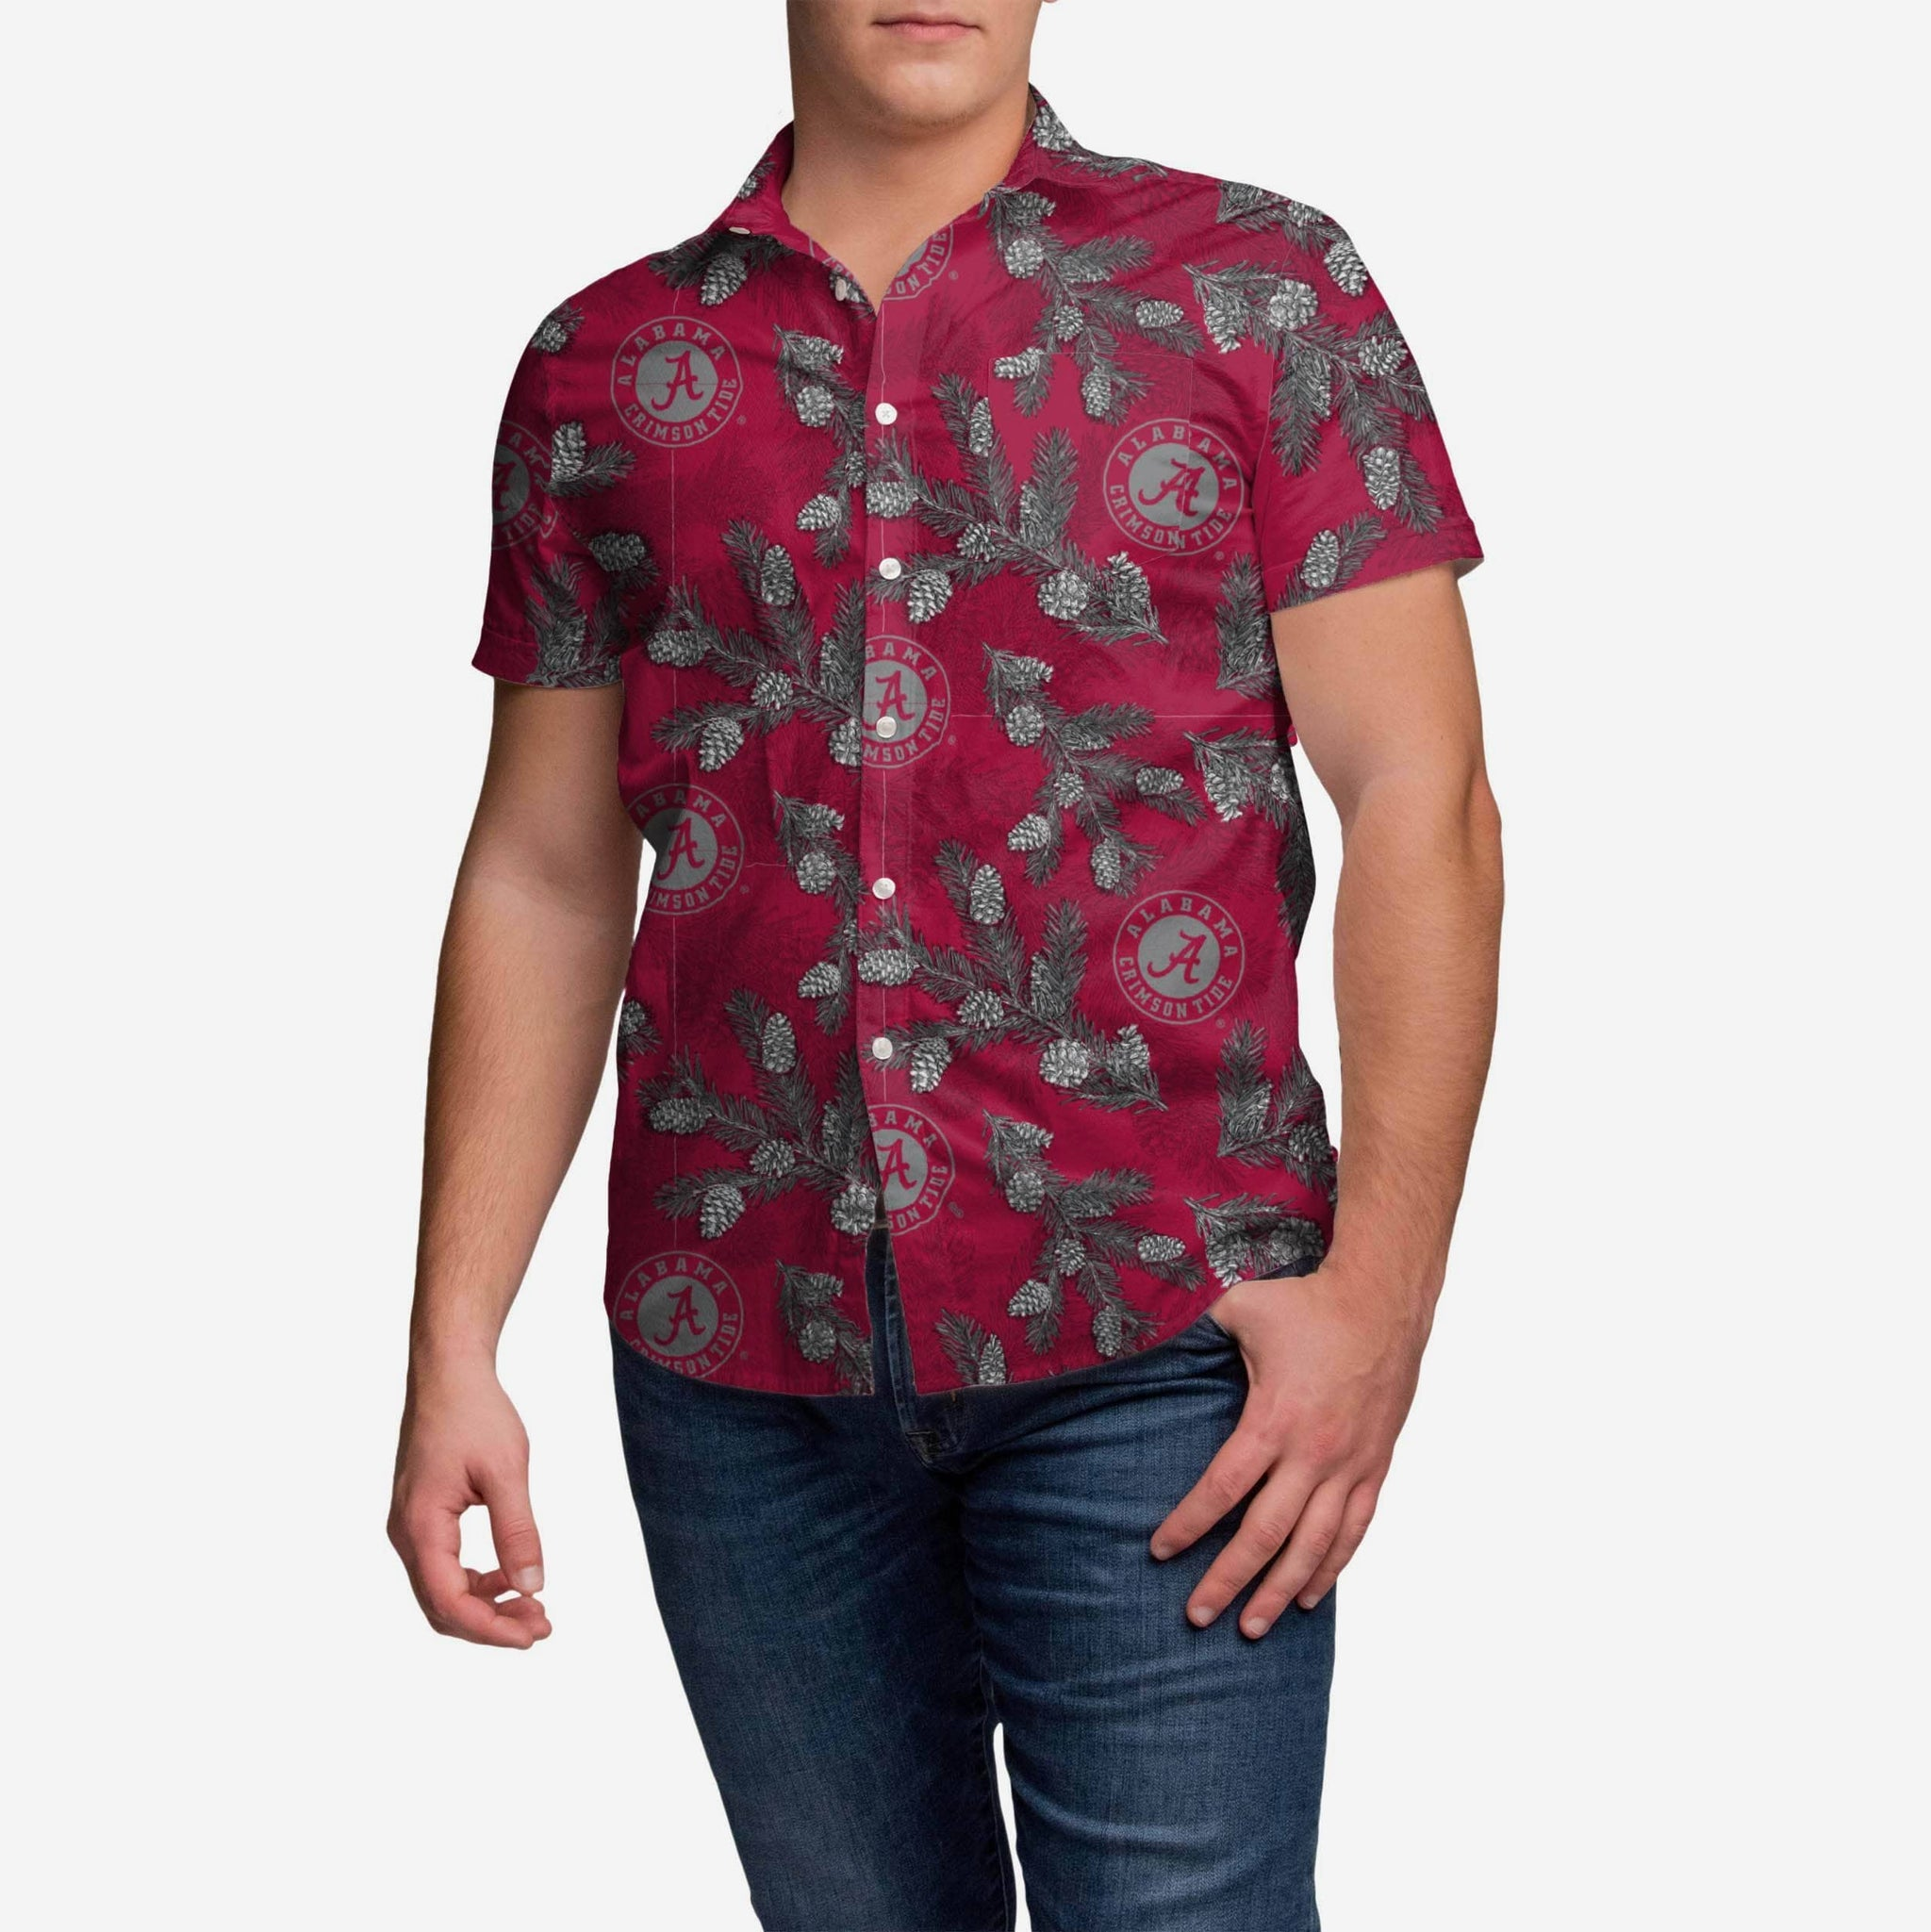 Alabama Crimson Tide Pinecone Button Up Shirt FOCO - FOCO.com